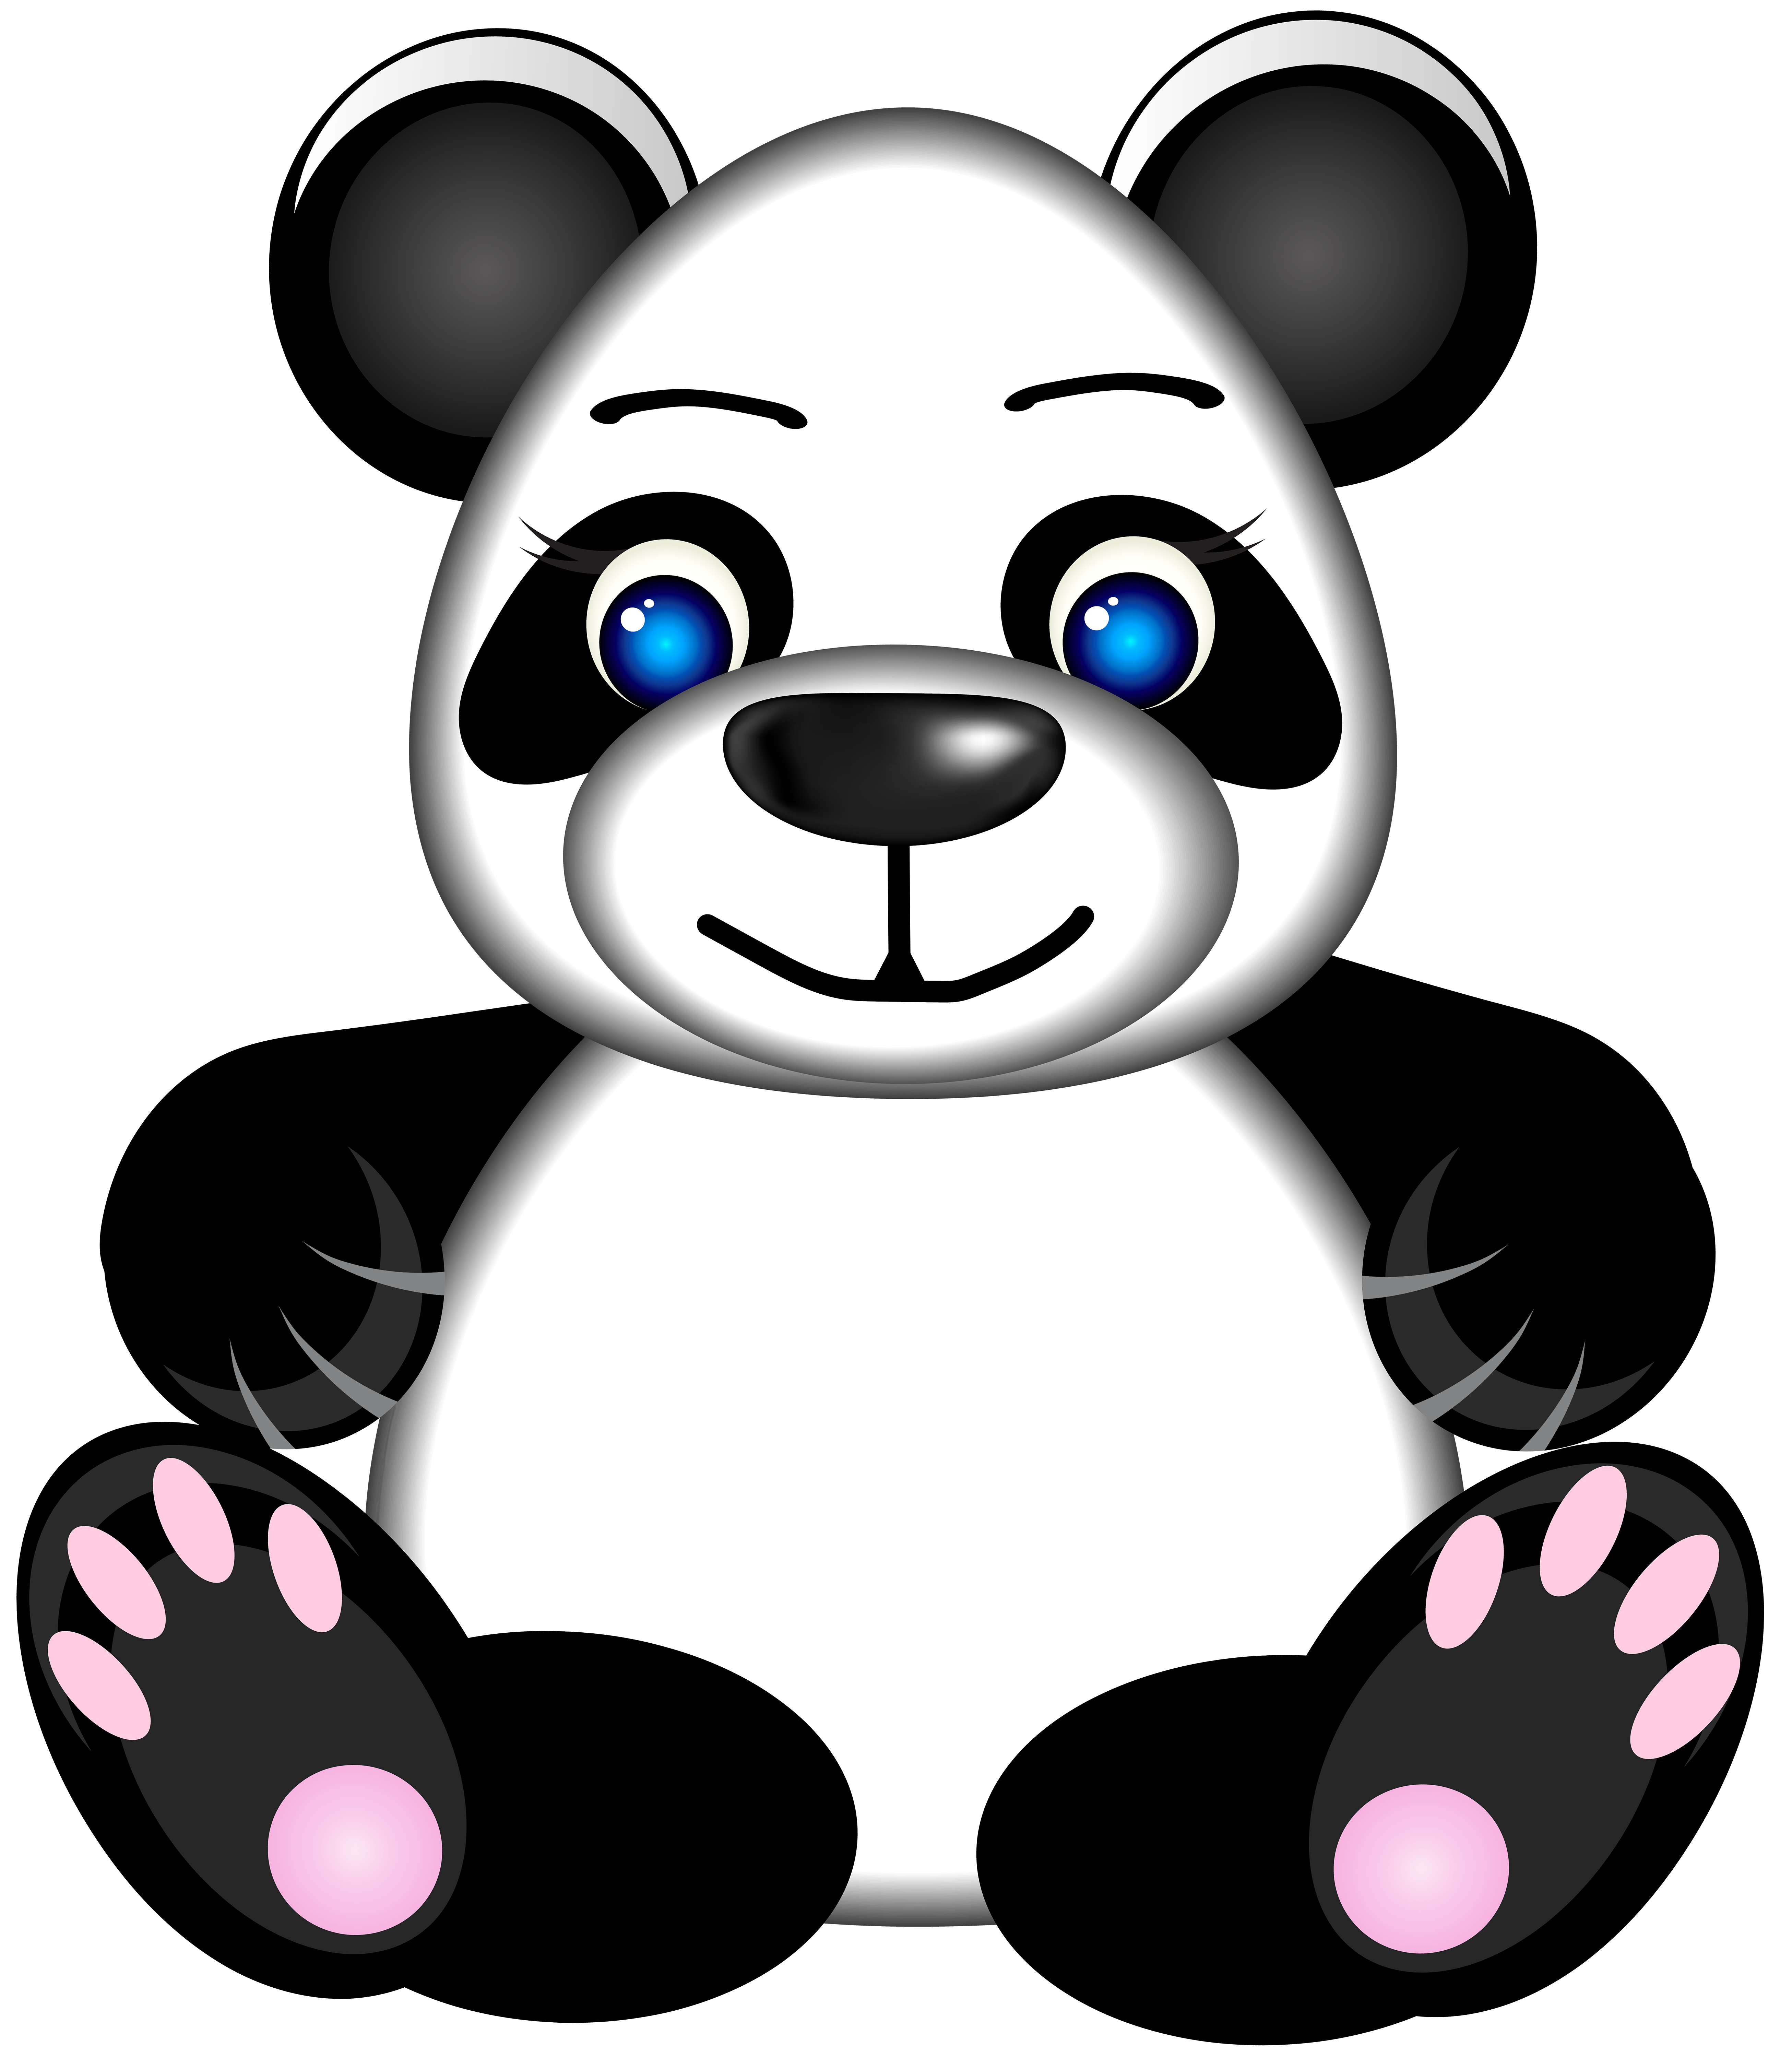 Panda clipart png. Clip art image gallery